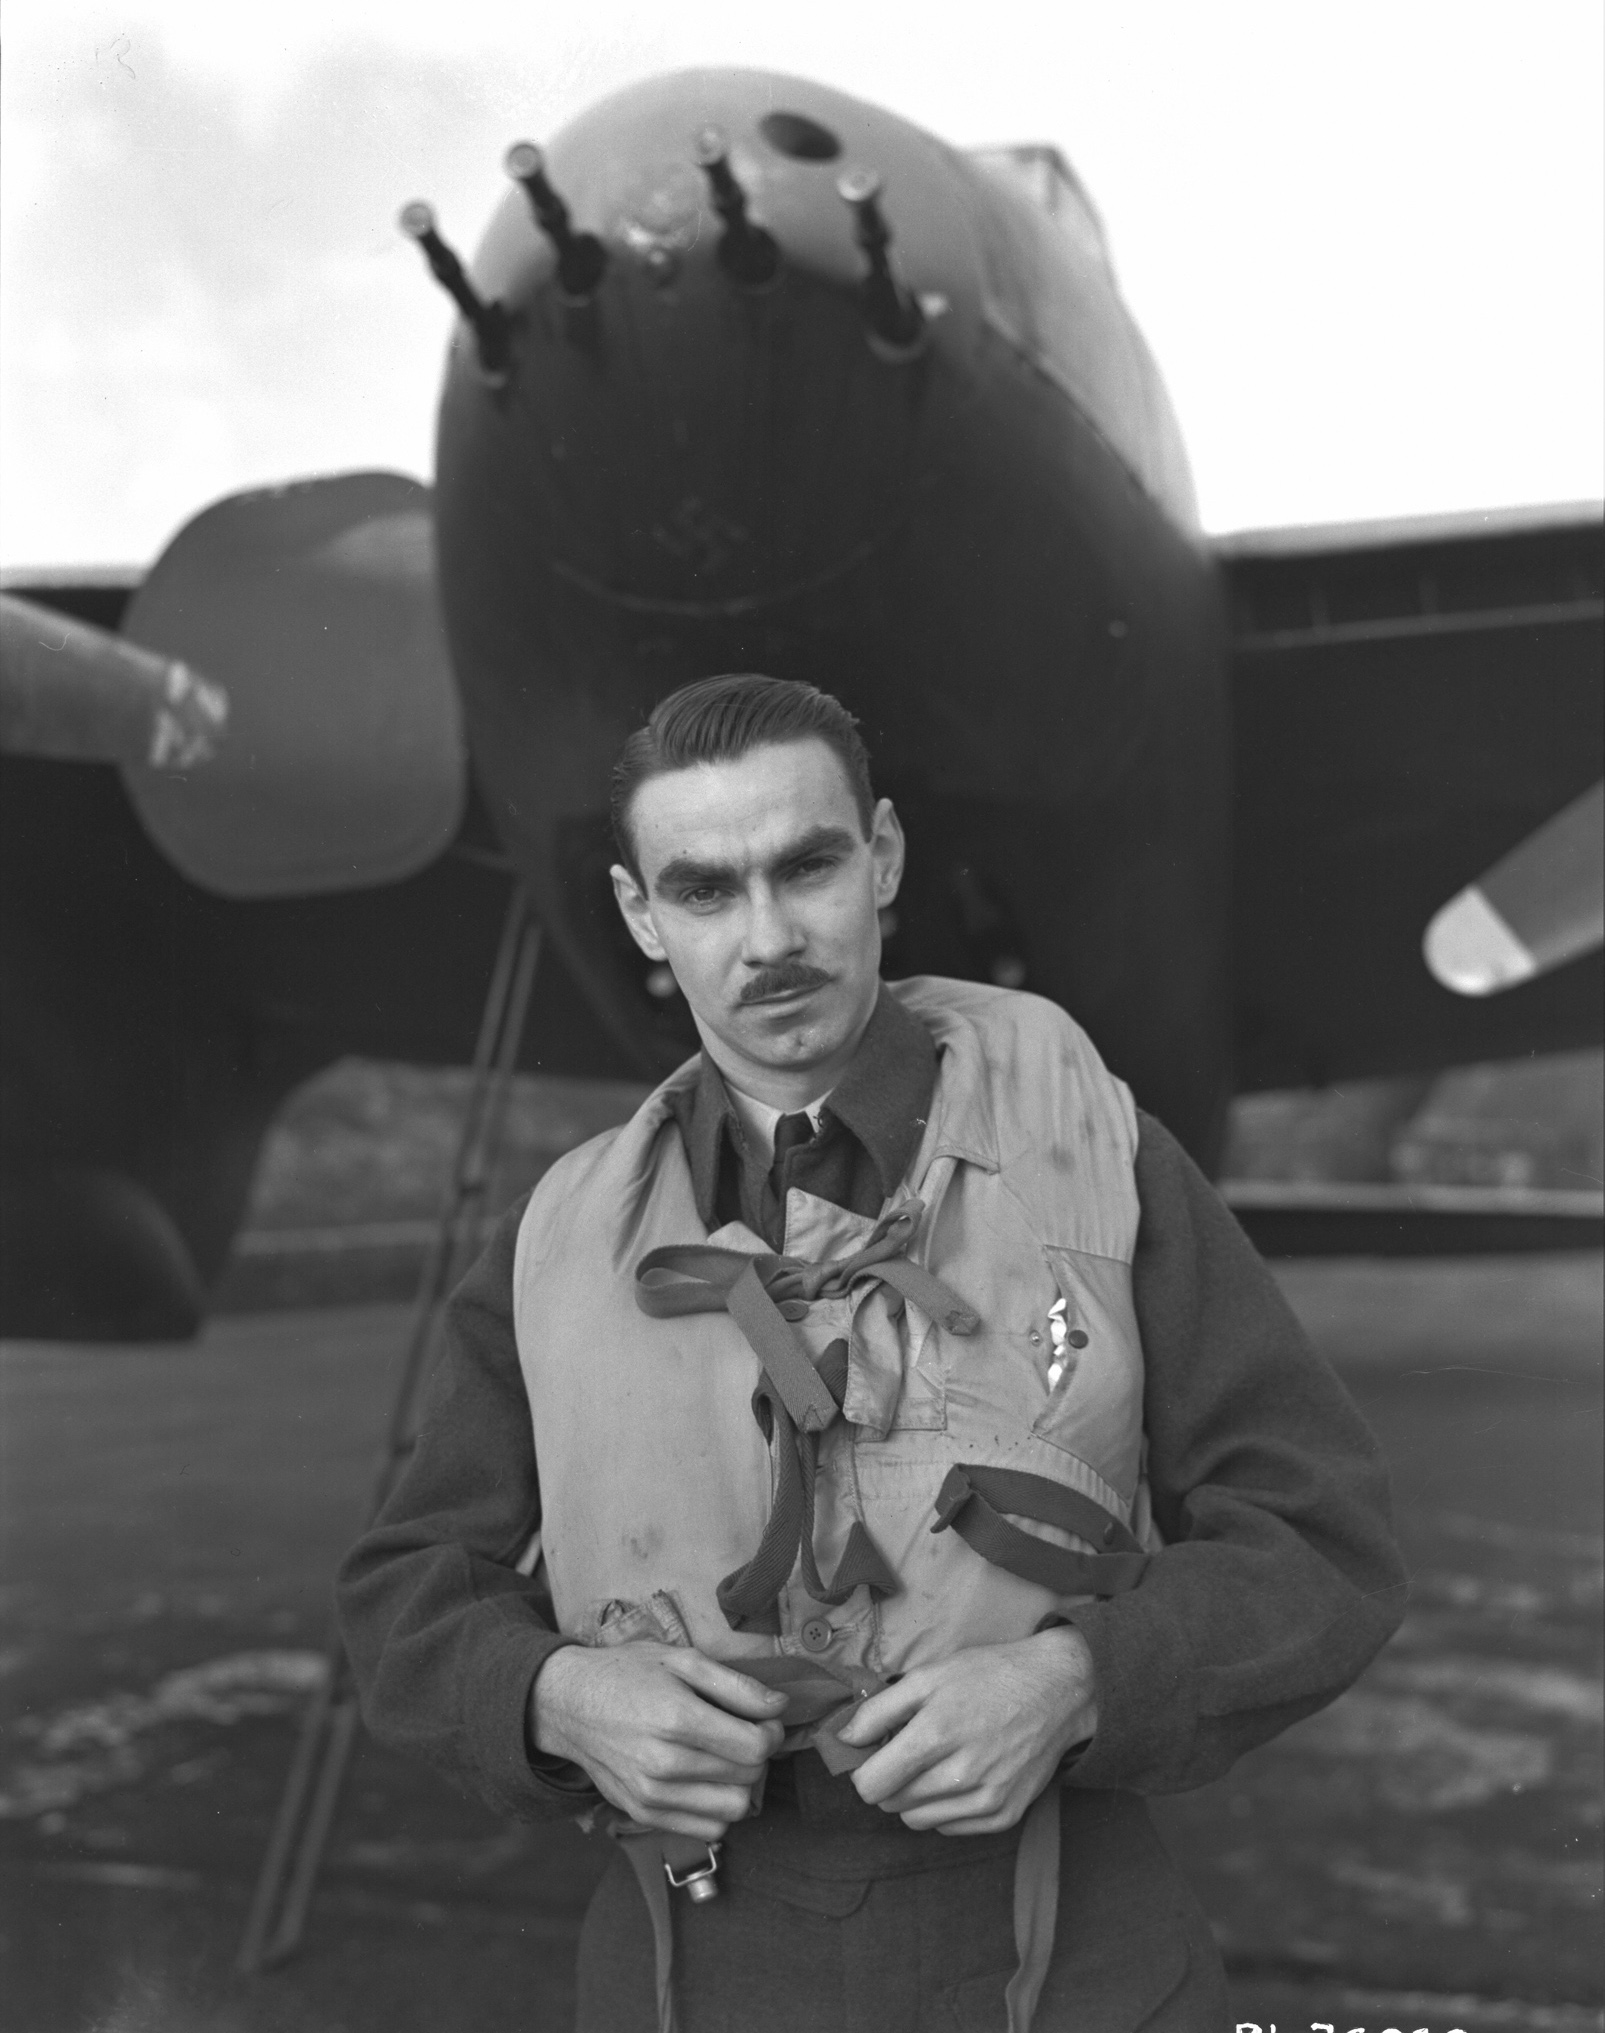 A black and white photo of a man wearing a military uniform, including a life jacket, standing in front of a propeller driven fighter aircraft.